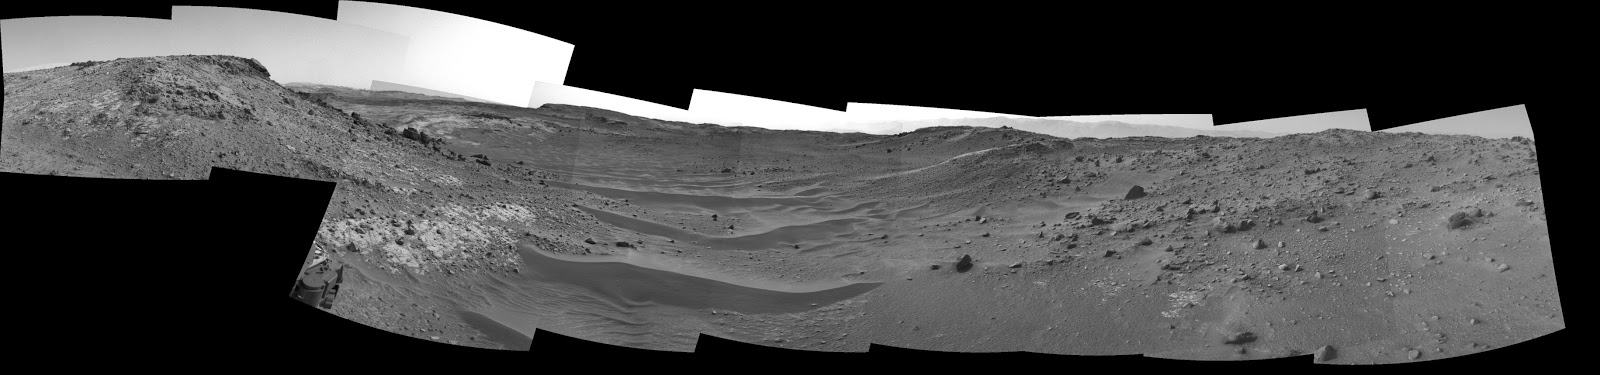 "This April 10, 2015, view from the Navigation Camera on NASA's Curiosity Mars rover shows the terrain ahead of the rover as it makes its way westward through a valley called ""Artist's Drive."" Image Credit: NASA/JPL-Caltech"